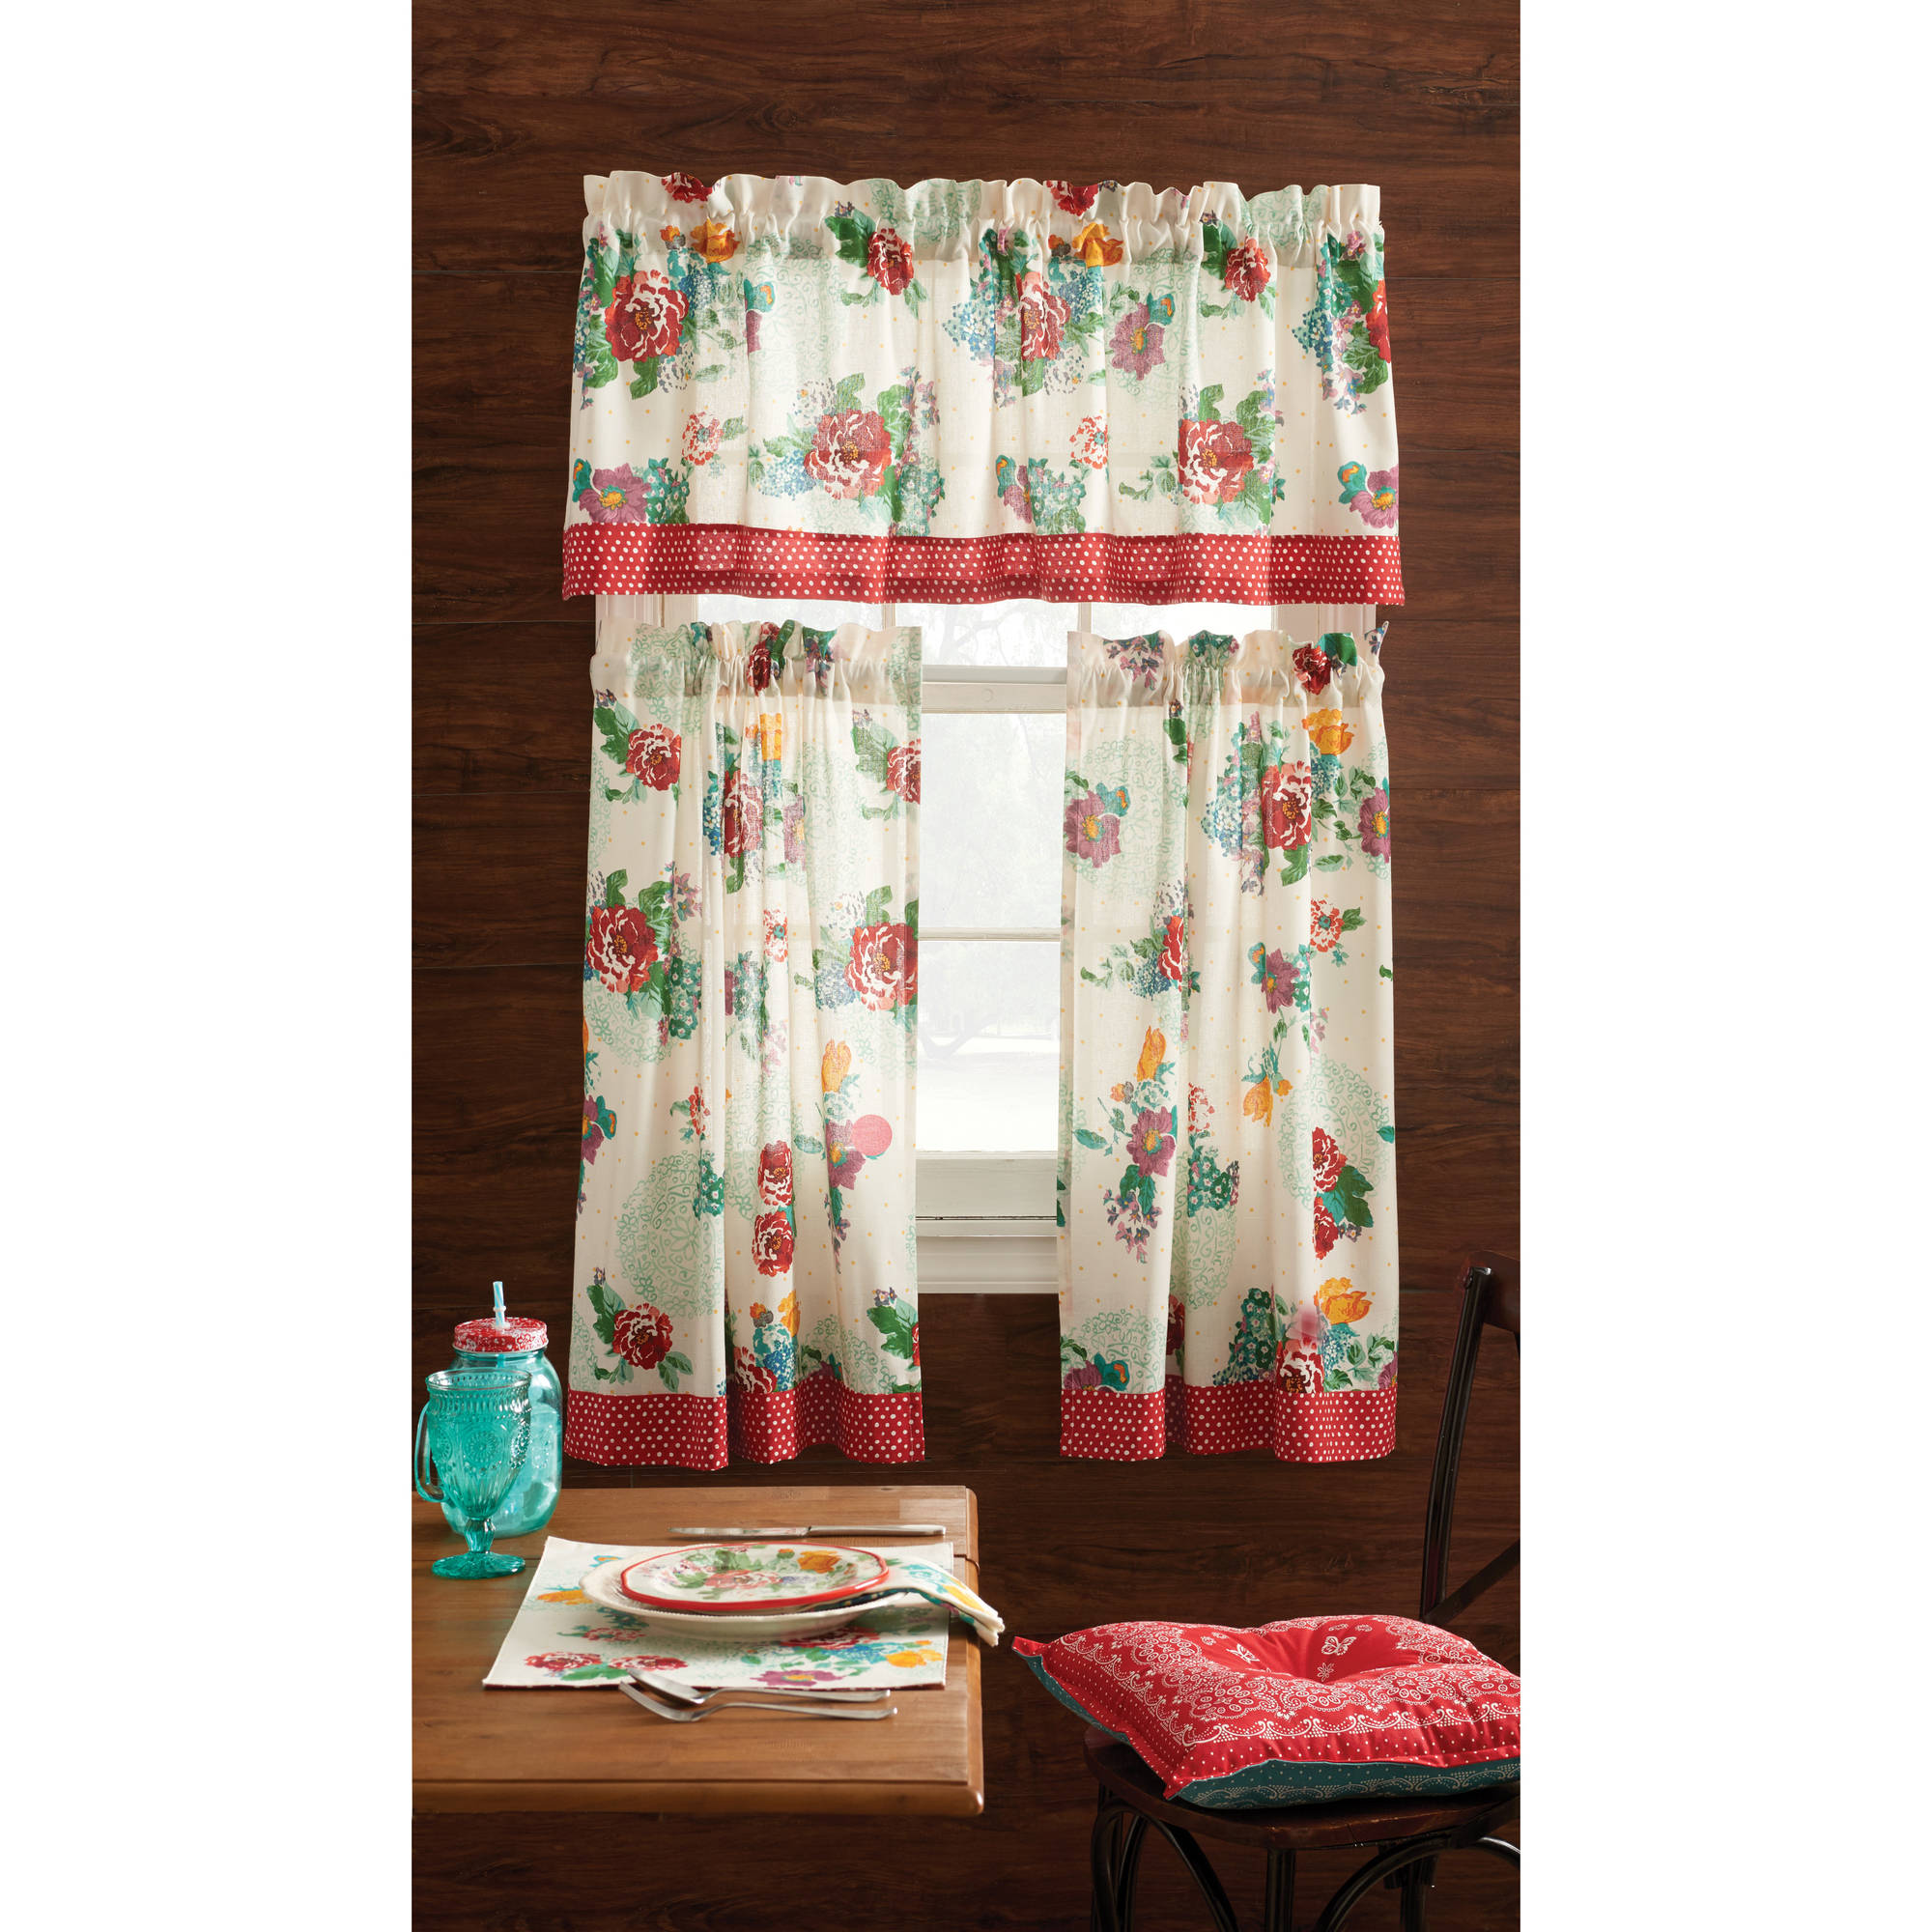 Amazing Pioneer Woman Kitchen Curtain And Valance 3pc Set, Country Garden